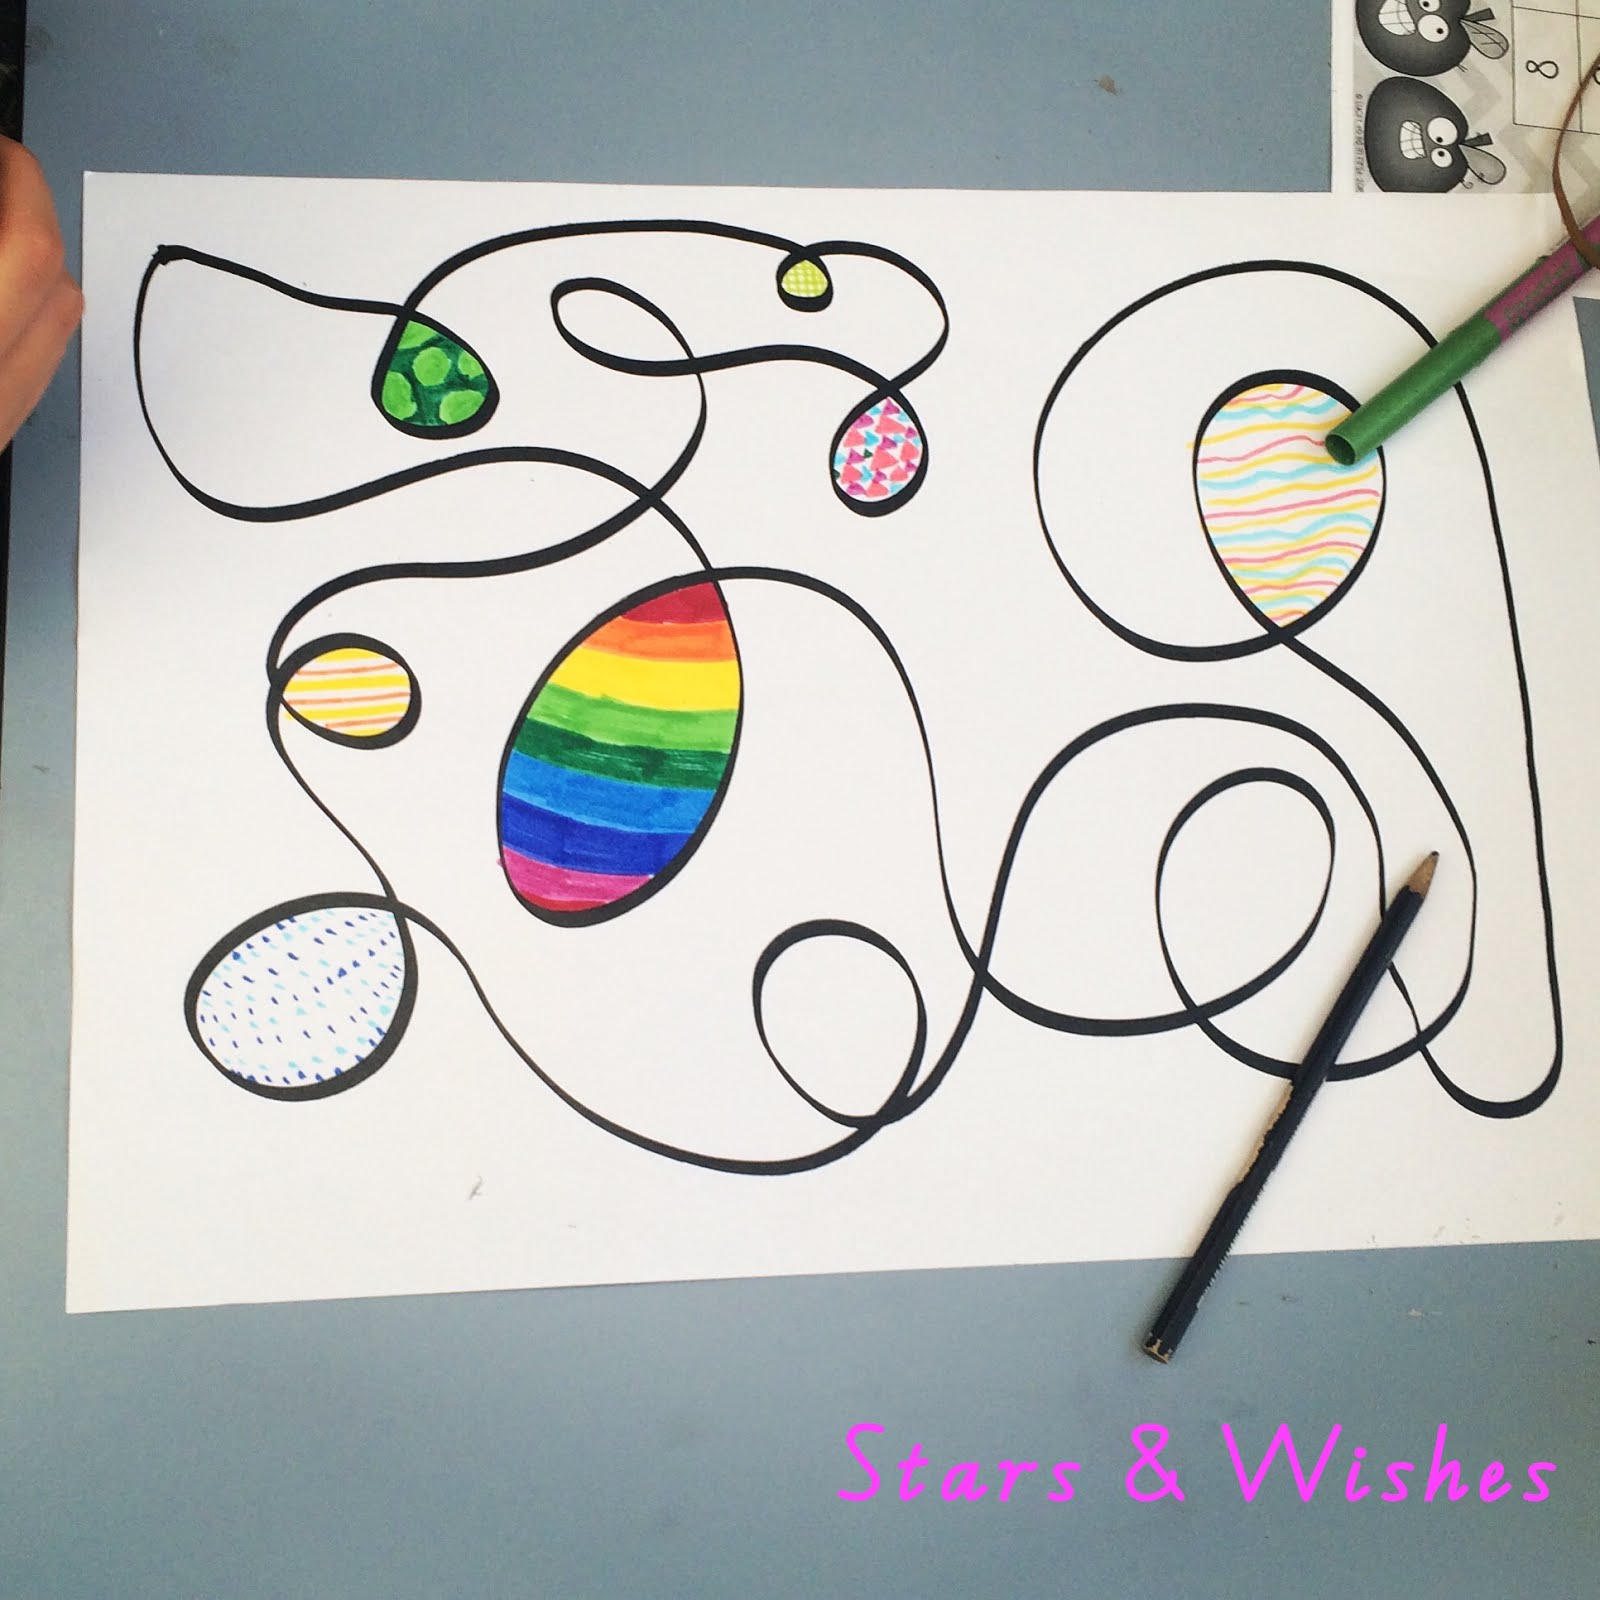 Line Drawing Activity : Stars and wishes easy art activity squiggle line drawings